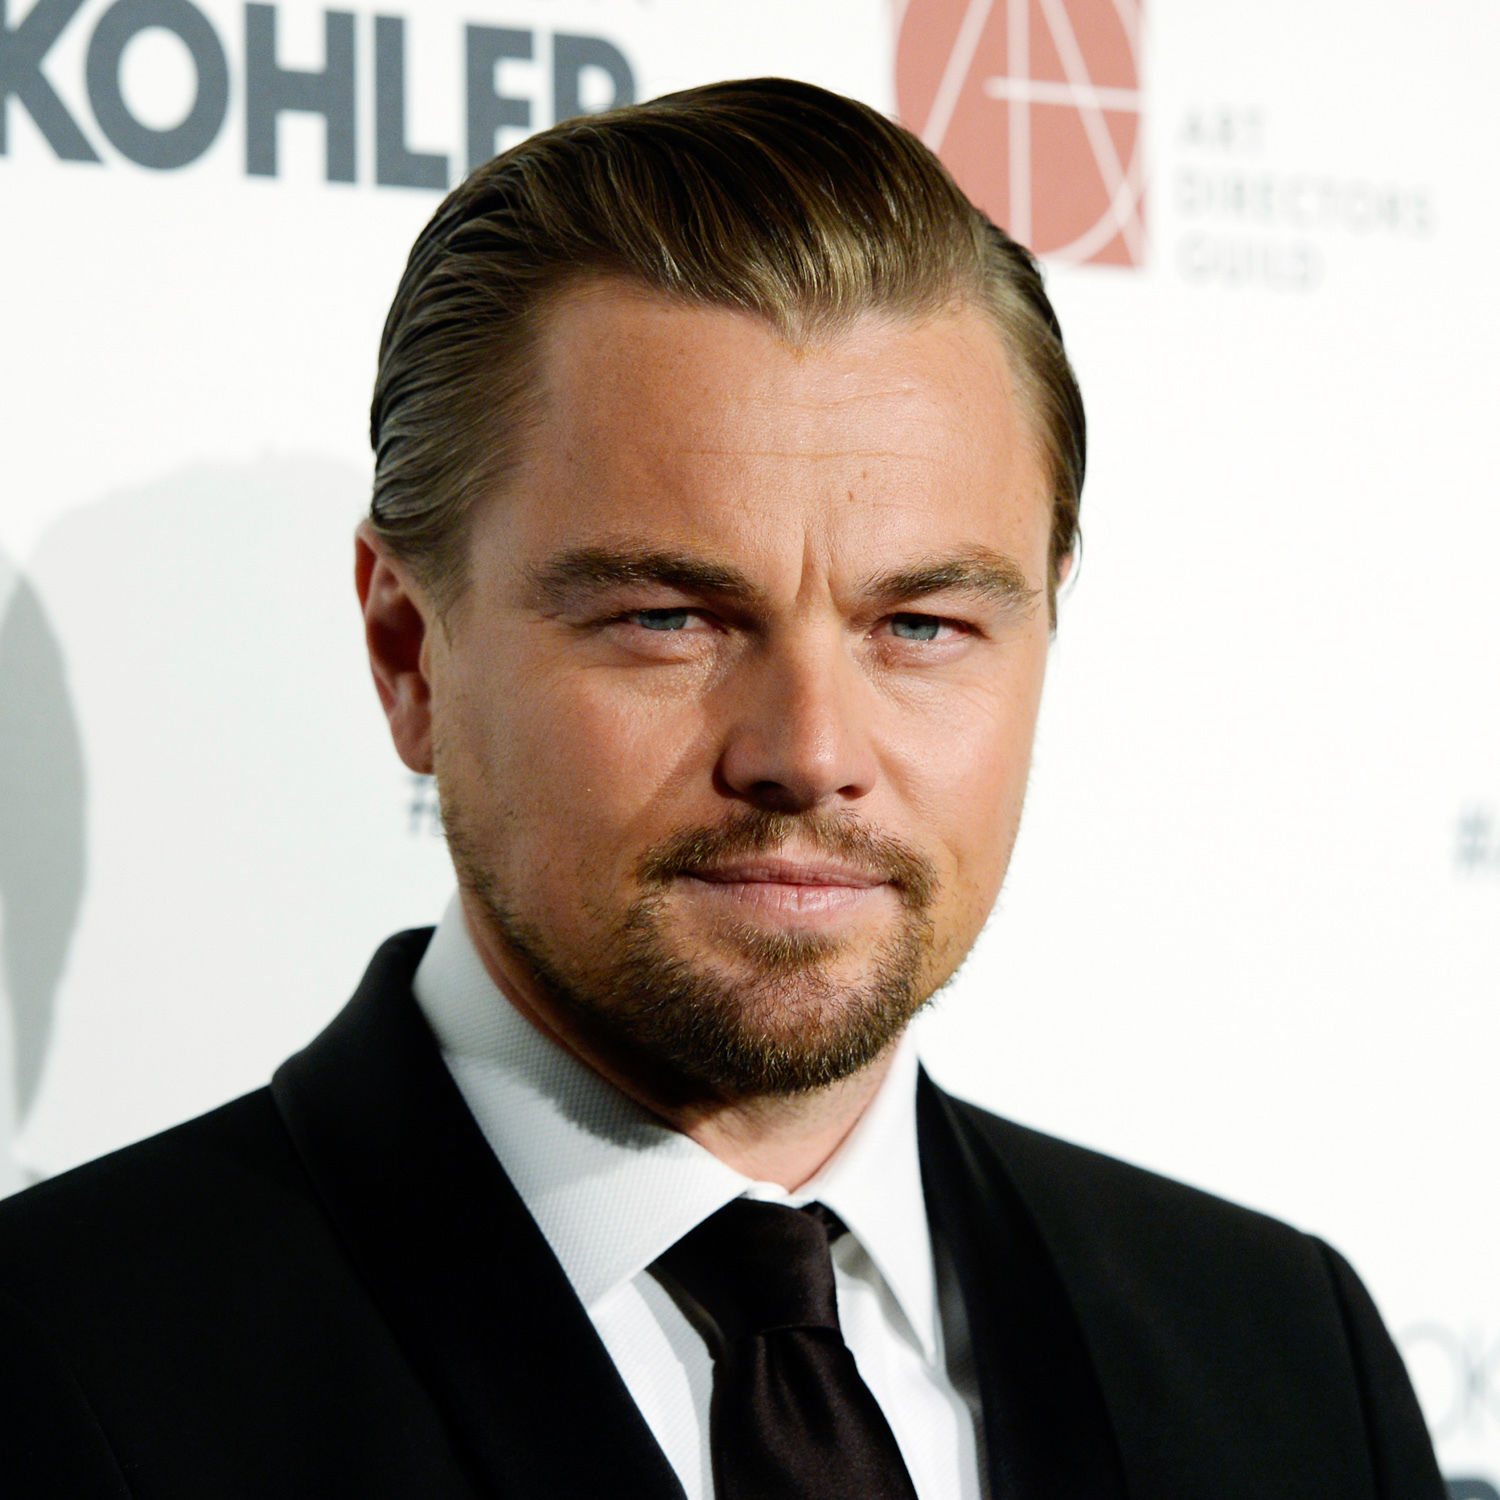 Les stars les plus rentables du box-office Leonardo DiCaprio